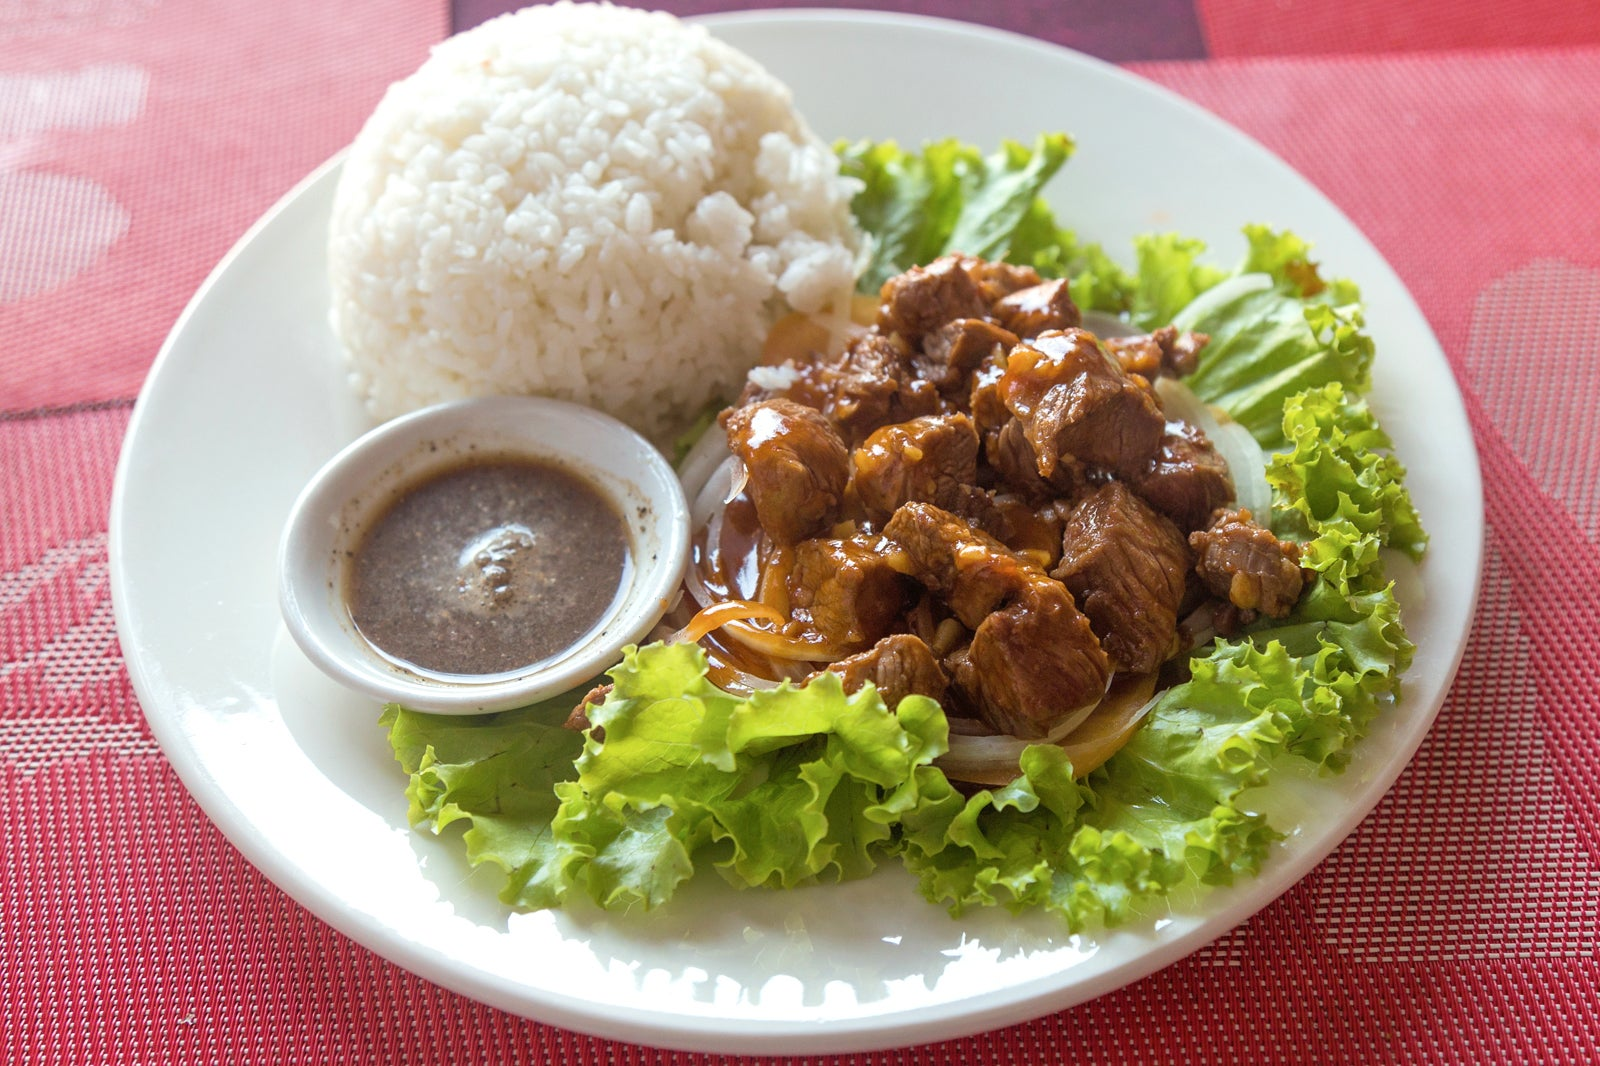 8 Best Dishes in Cambodia - Local Cambodian Food You Should